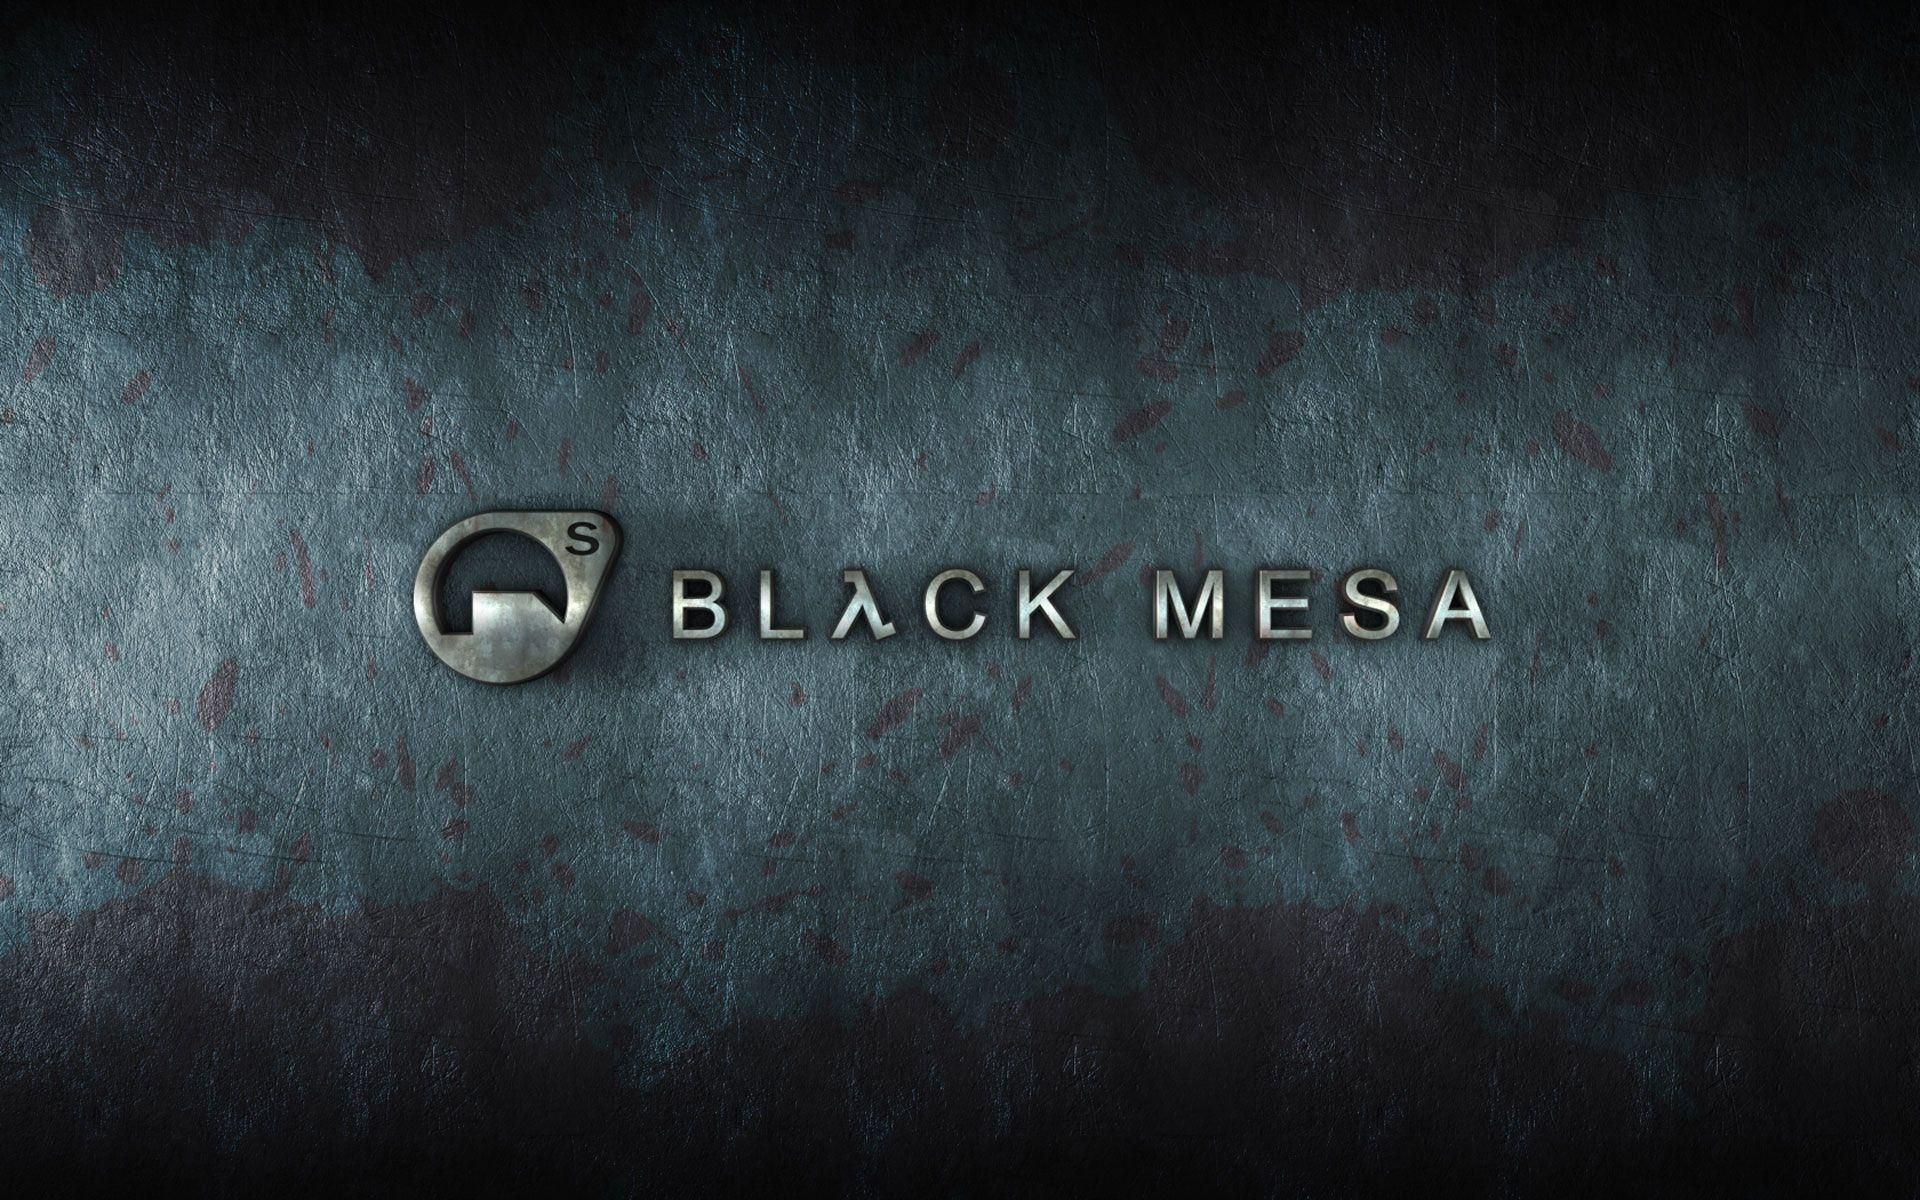 Black Mesa Source Pictures